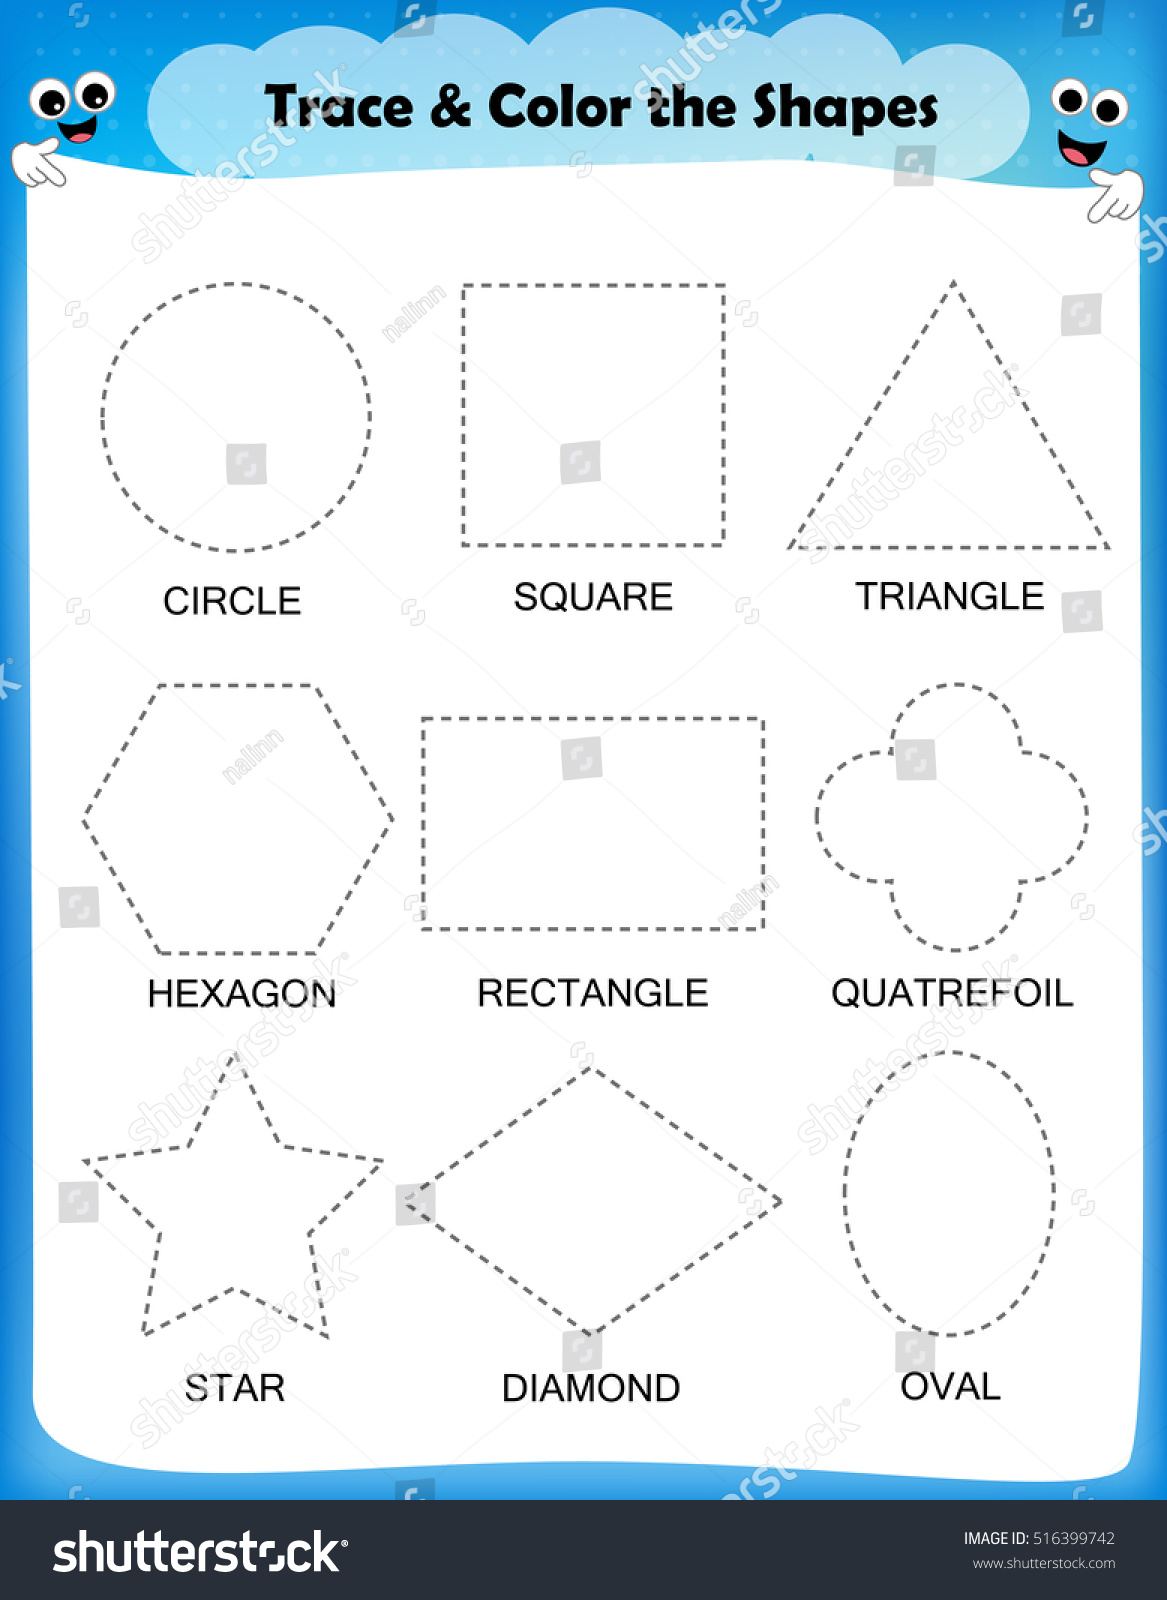 Kidzone Preschool Shapes Worksheet